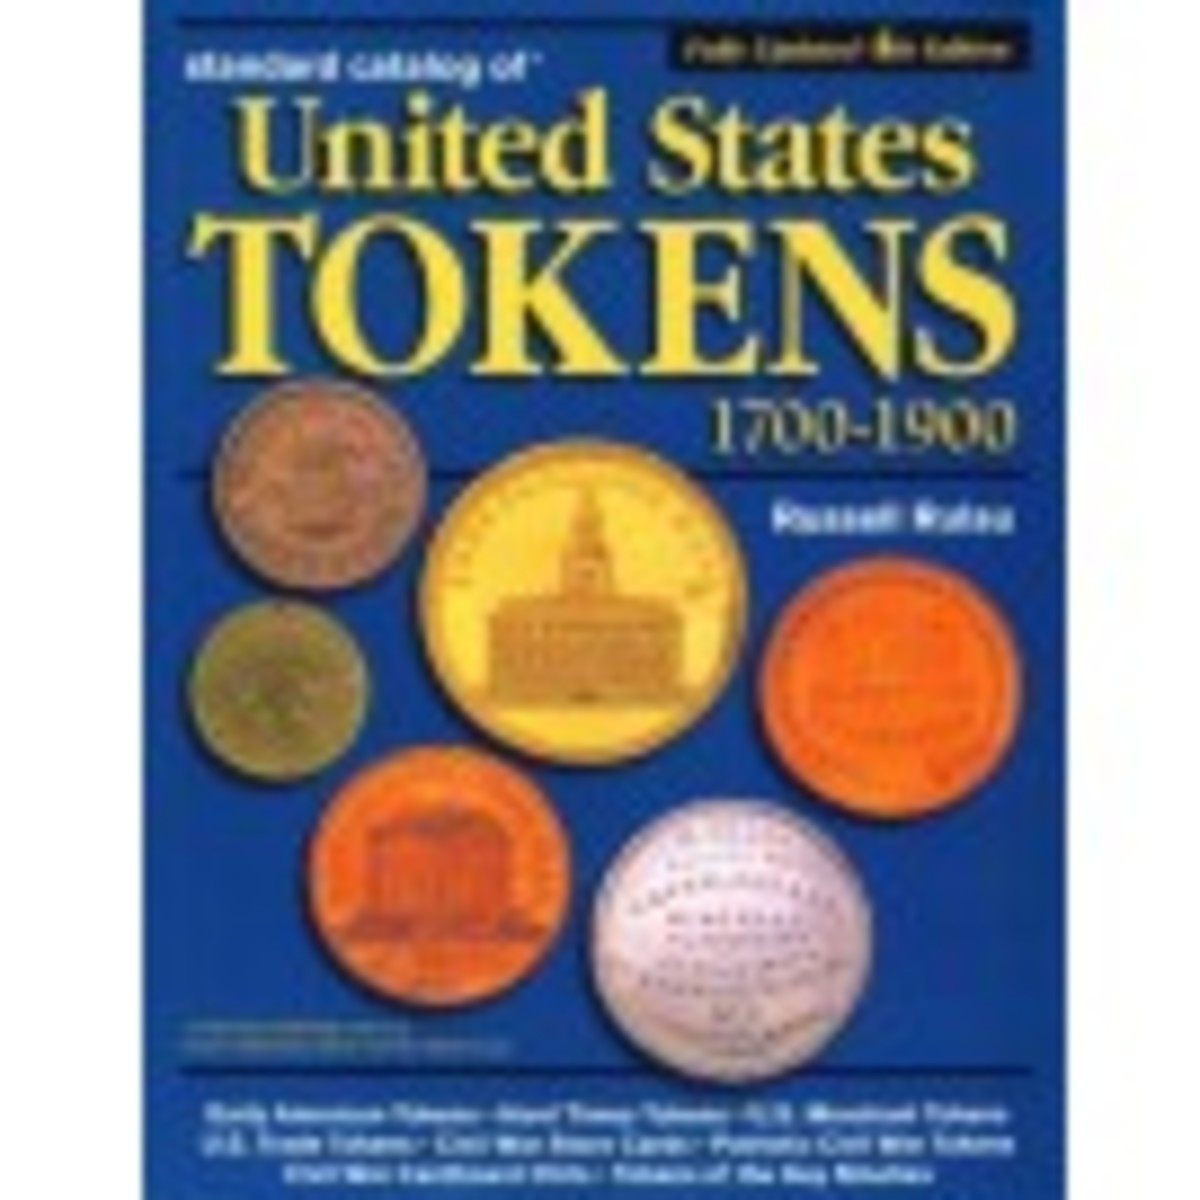 With all this history it's no wonder tokens are a popular segment of the coin collecting community.